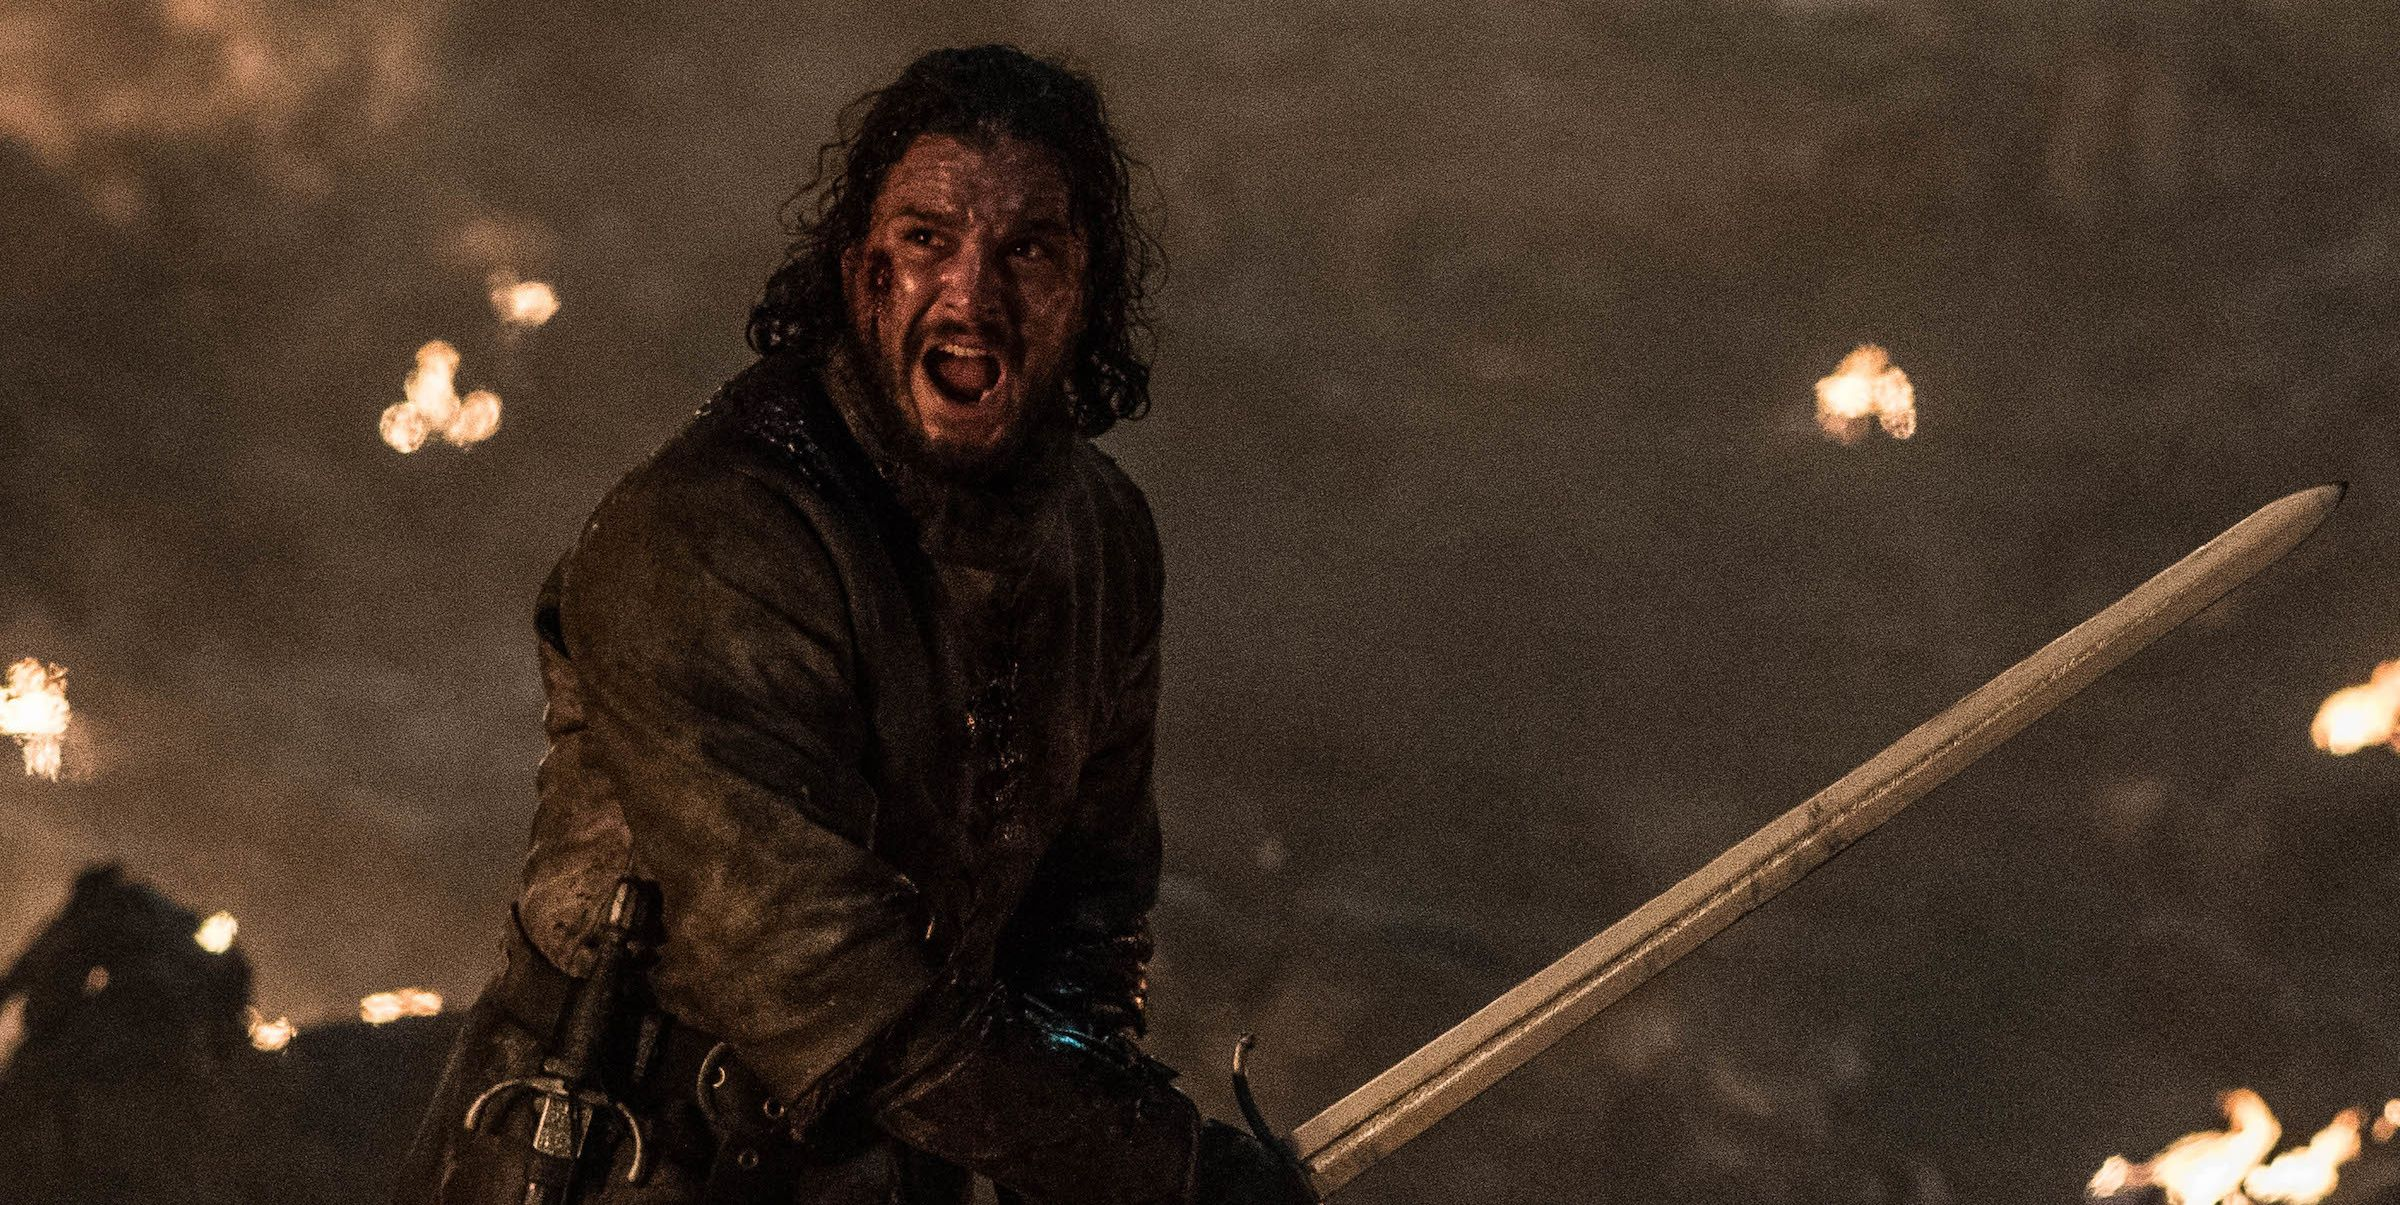 'Game of Thrones' Fans Found Hidden Proof That Jon Snow Helped Arya Kill the Night King